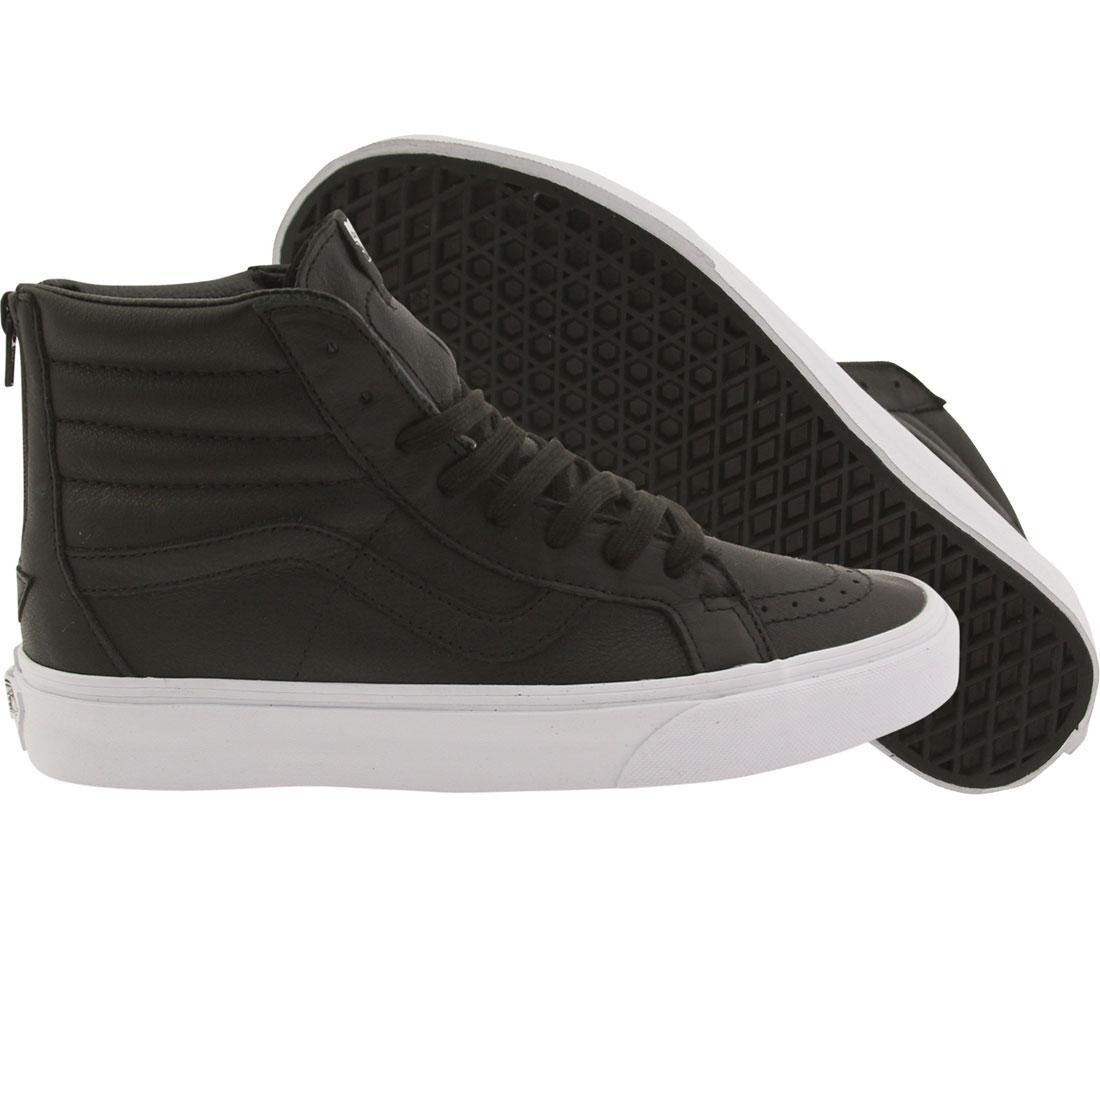 97c2feeef2a9 Vans Men Sk8-Hi Reissue - Premium Leather black white